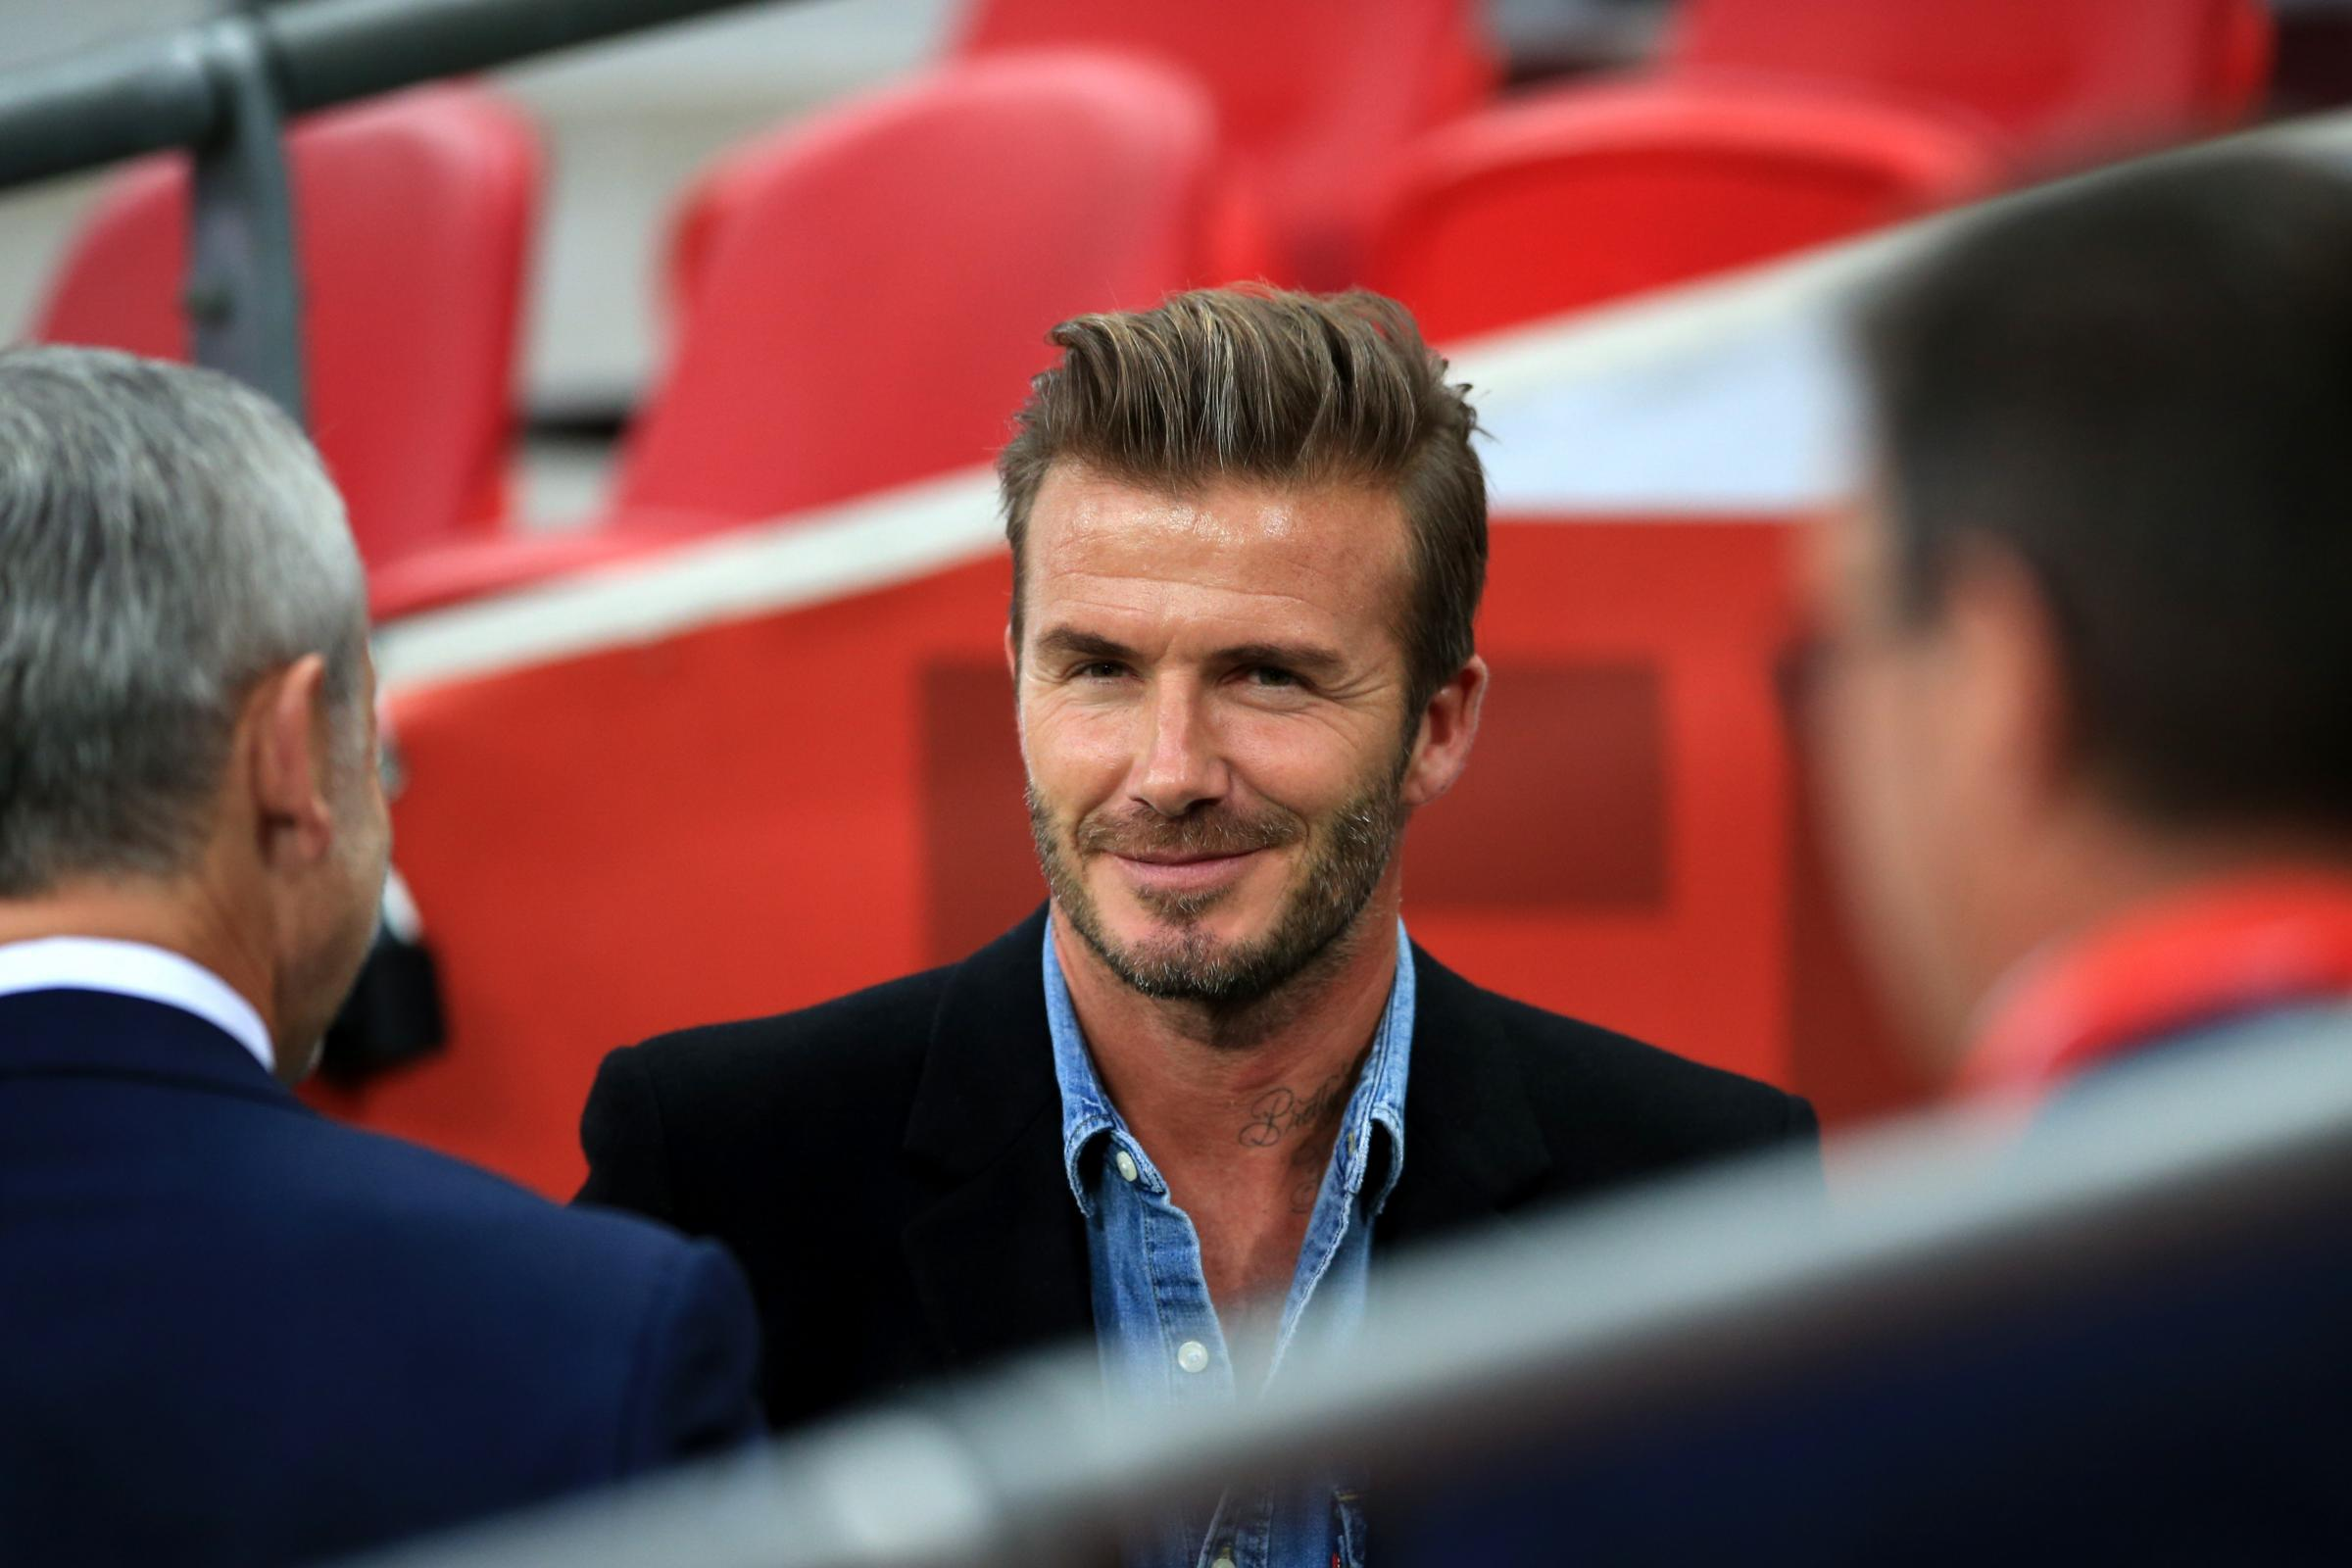 Inter Miami president David Beckham was given the chance to buy into the MLS at a discounted price as part of his contract with the LA Galaxy